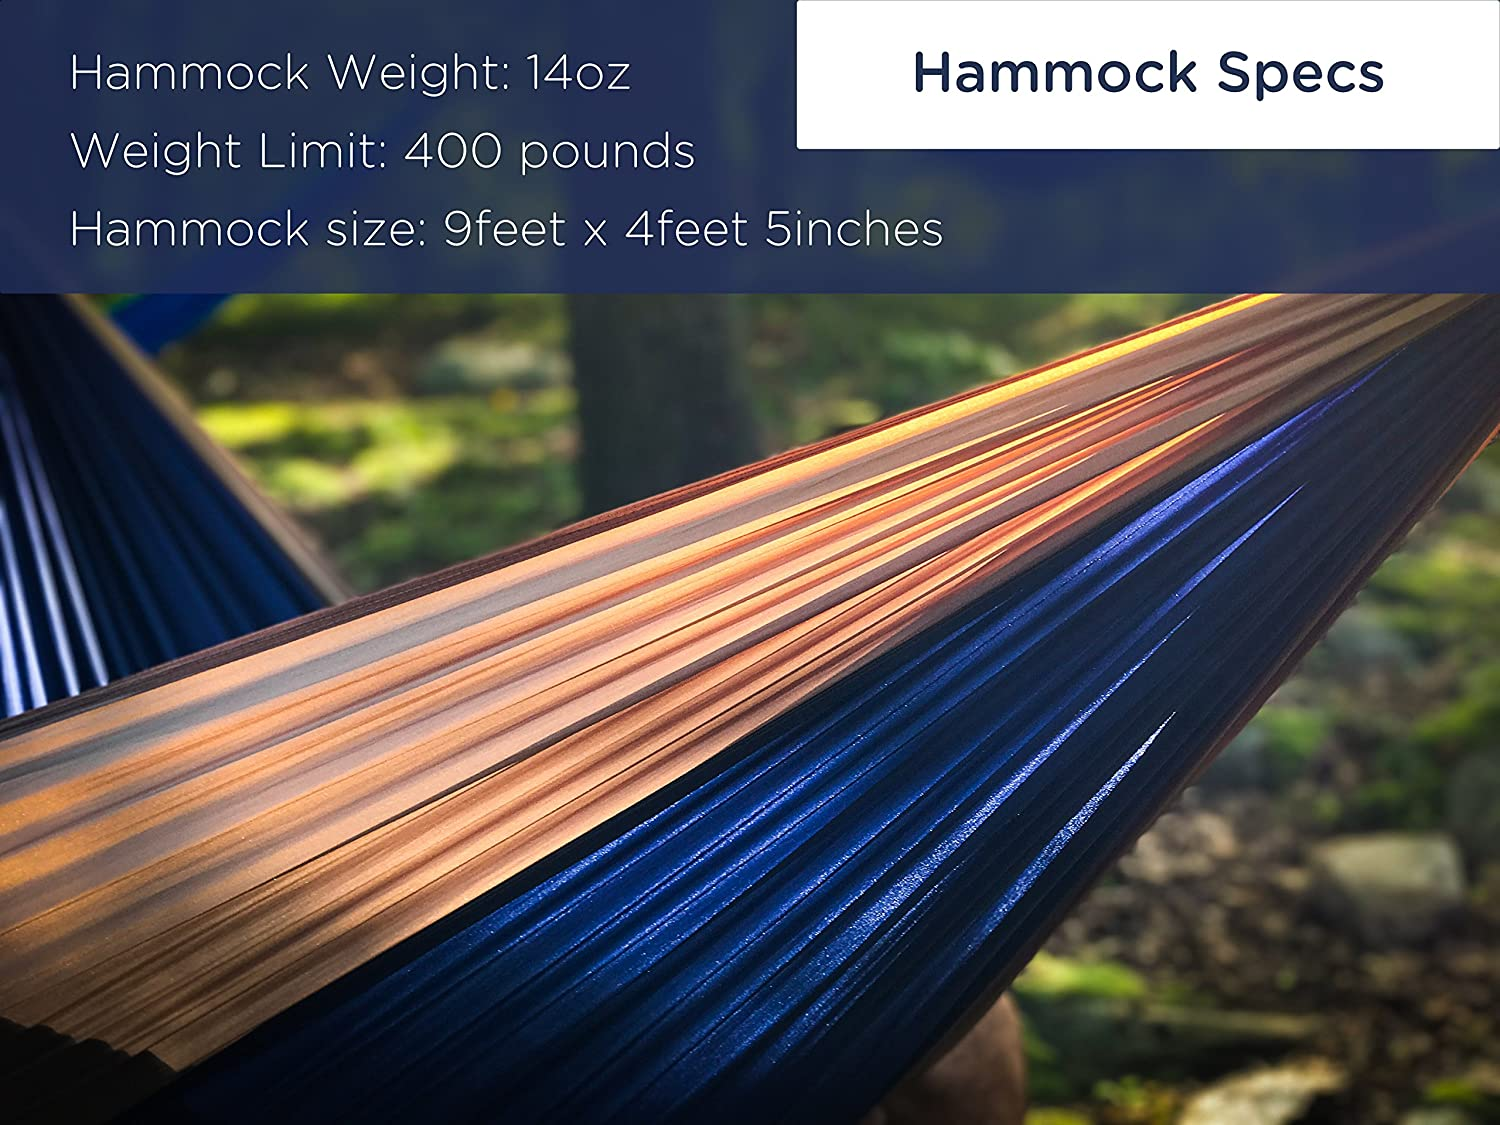 Serac Durable Hammock /& Strap Bundle Classic Portable Single Camping Hammock with Suspension System - Perfect for The Backpack, Travel and Camping